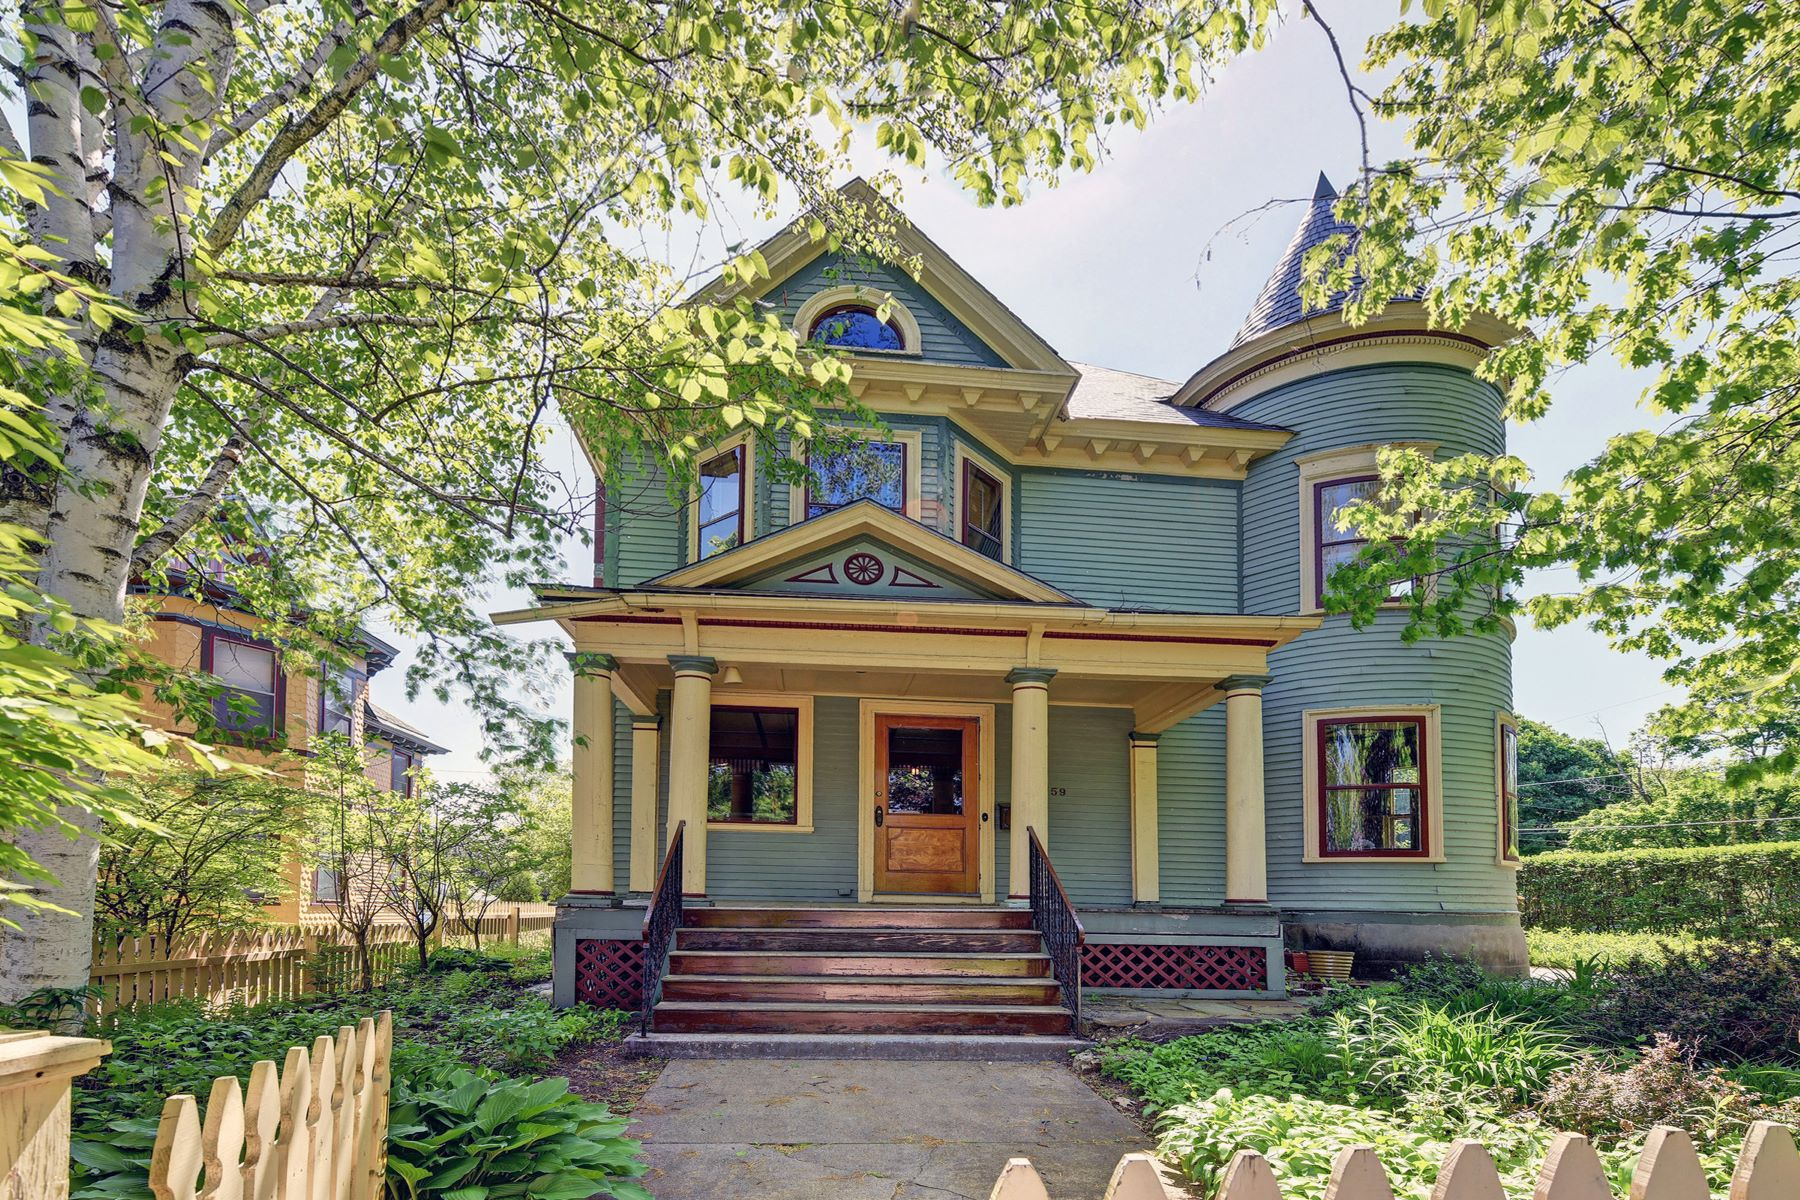 Single Family Homes for Active at Gracious and Elegant Victorian in Downtown Cultural District 159 Wendell Ave Pittsfield, Massachusetts 01201 United States